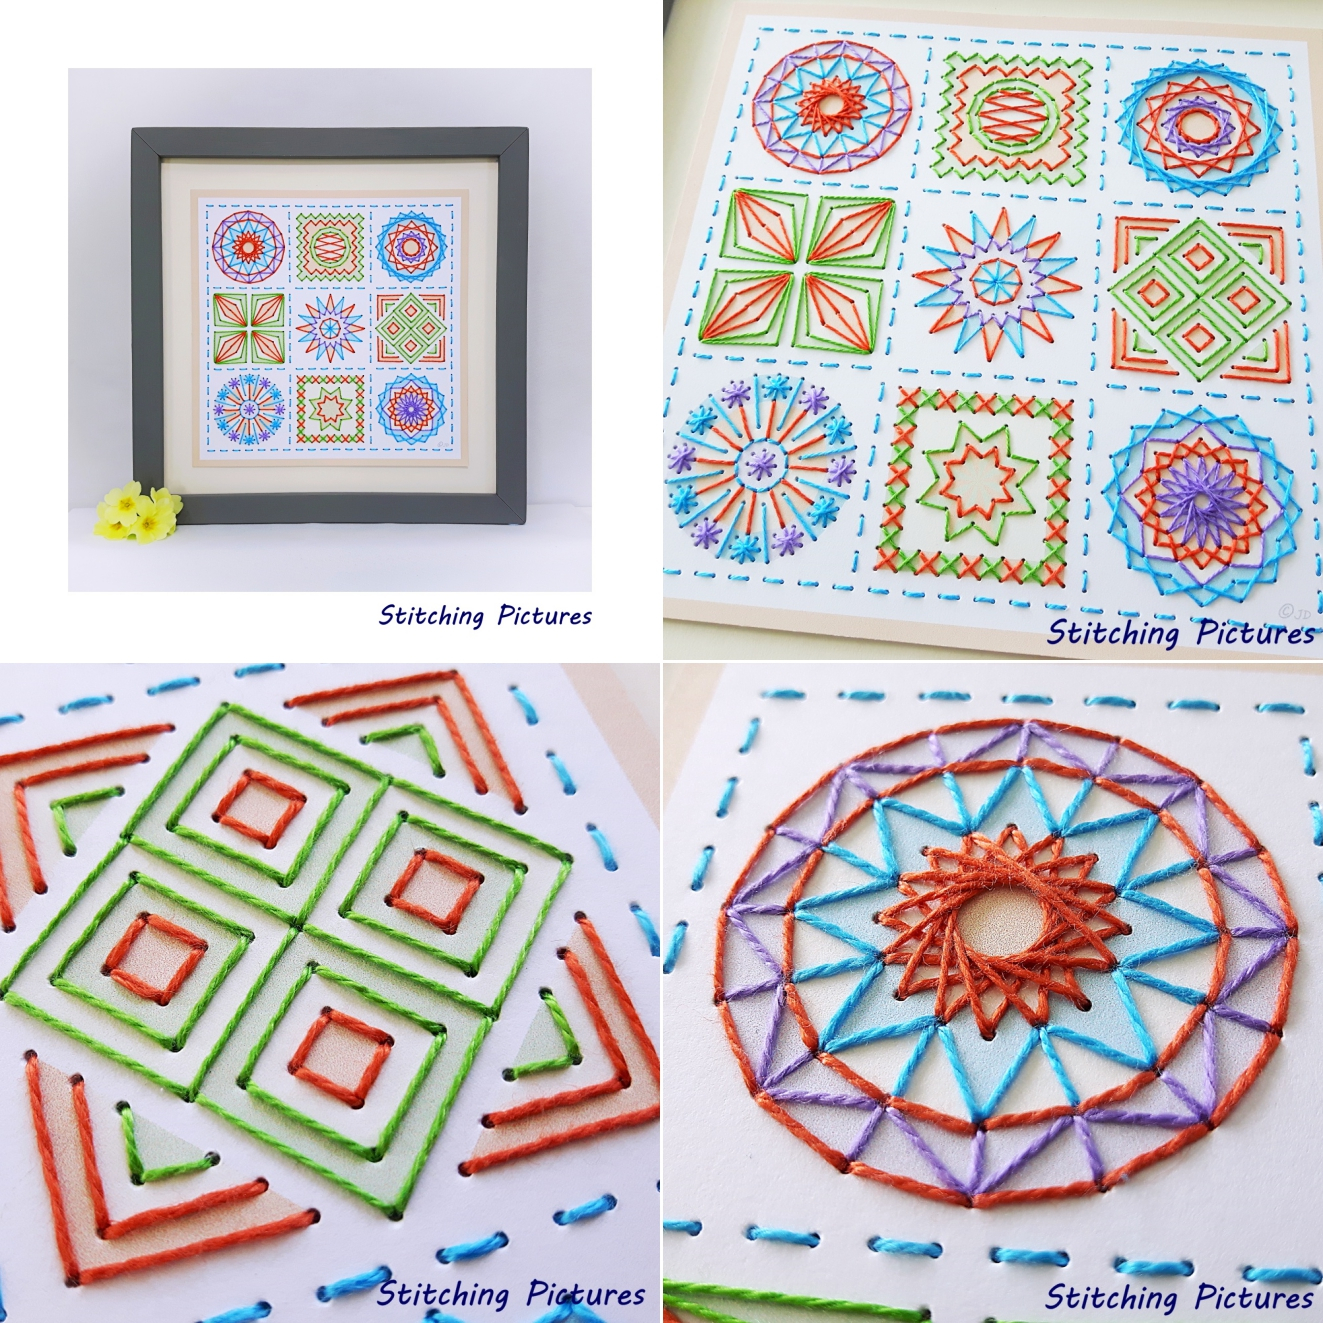 Embroidery Sampler Patterns Free Try Before You Buy With My Free To Download And Print Stitching On